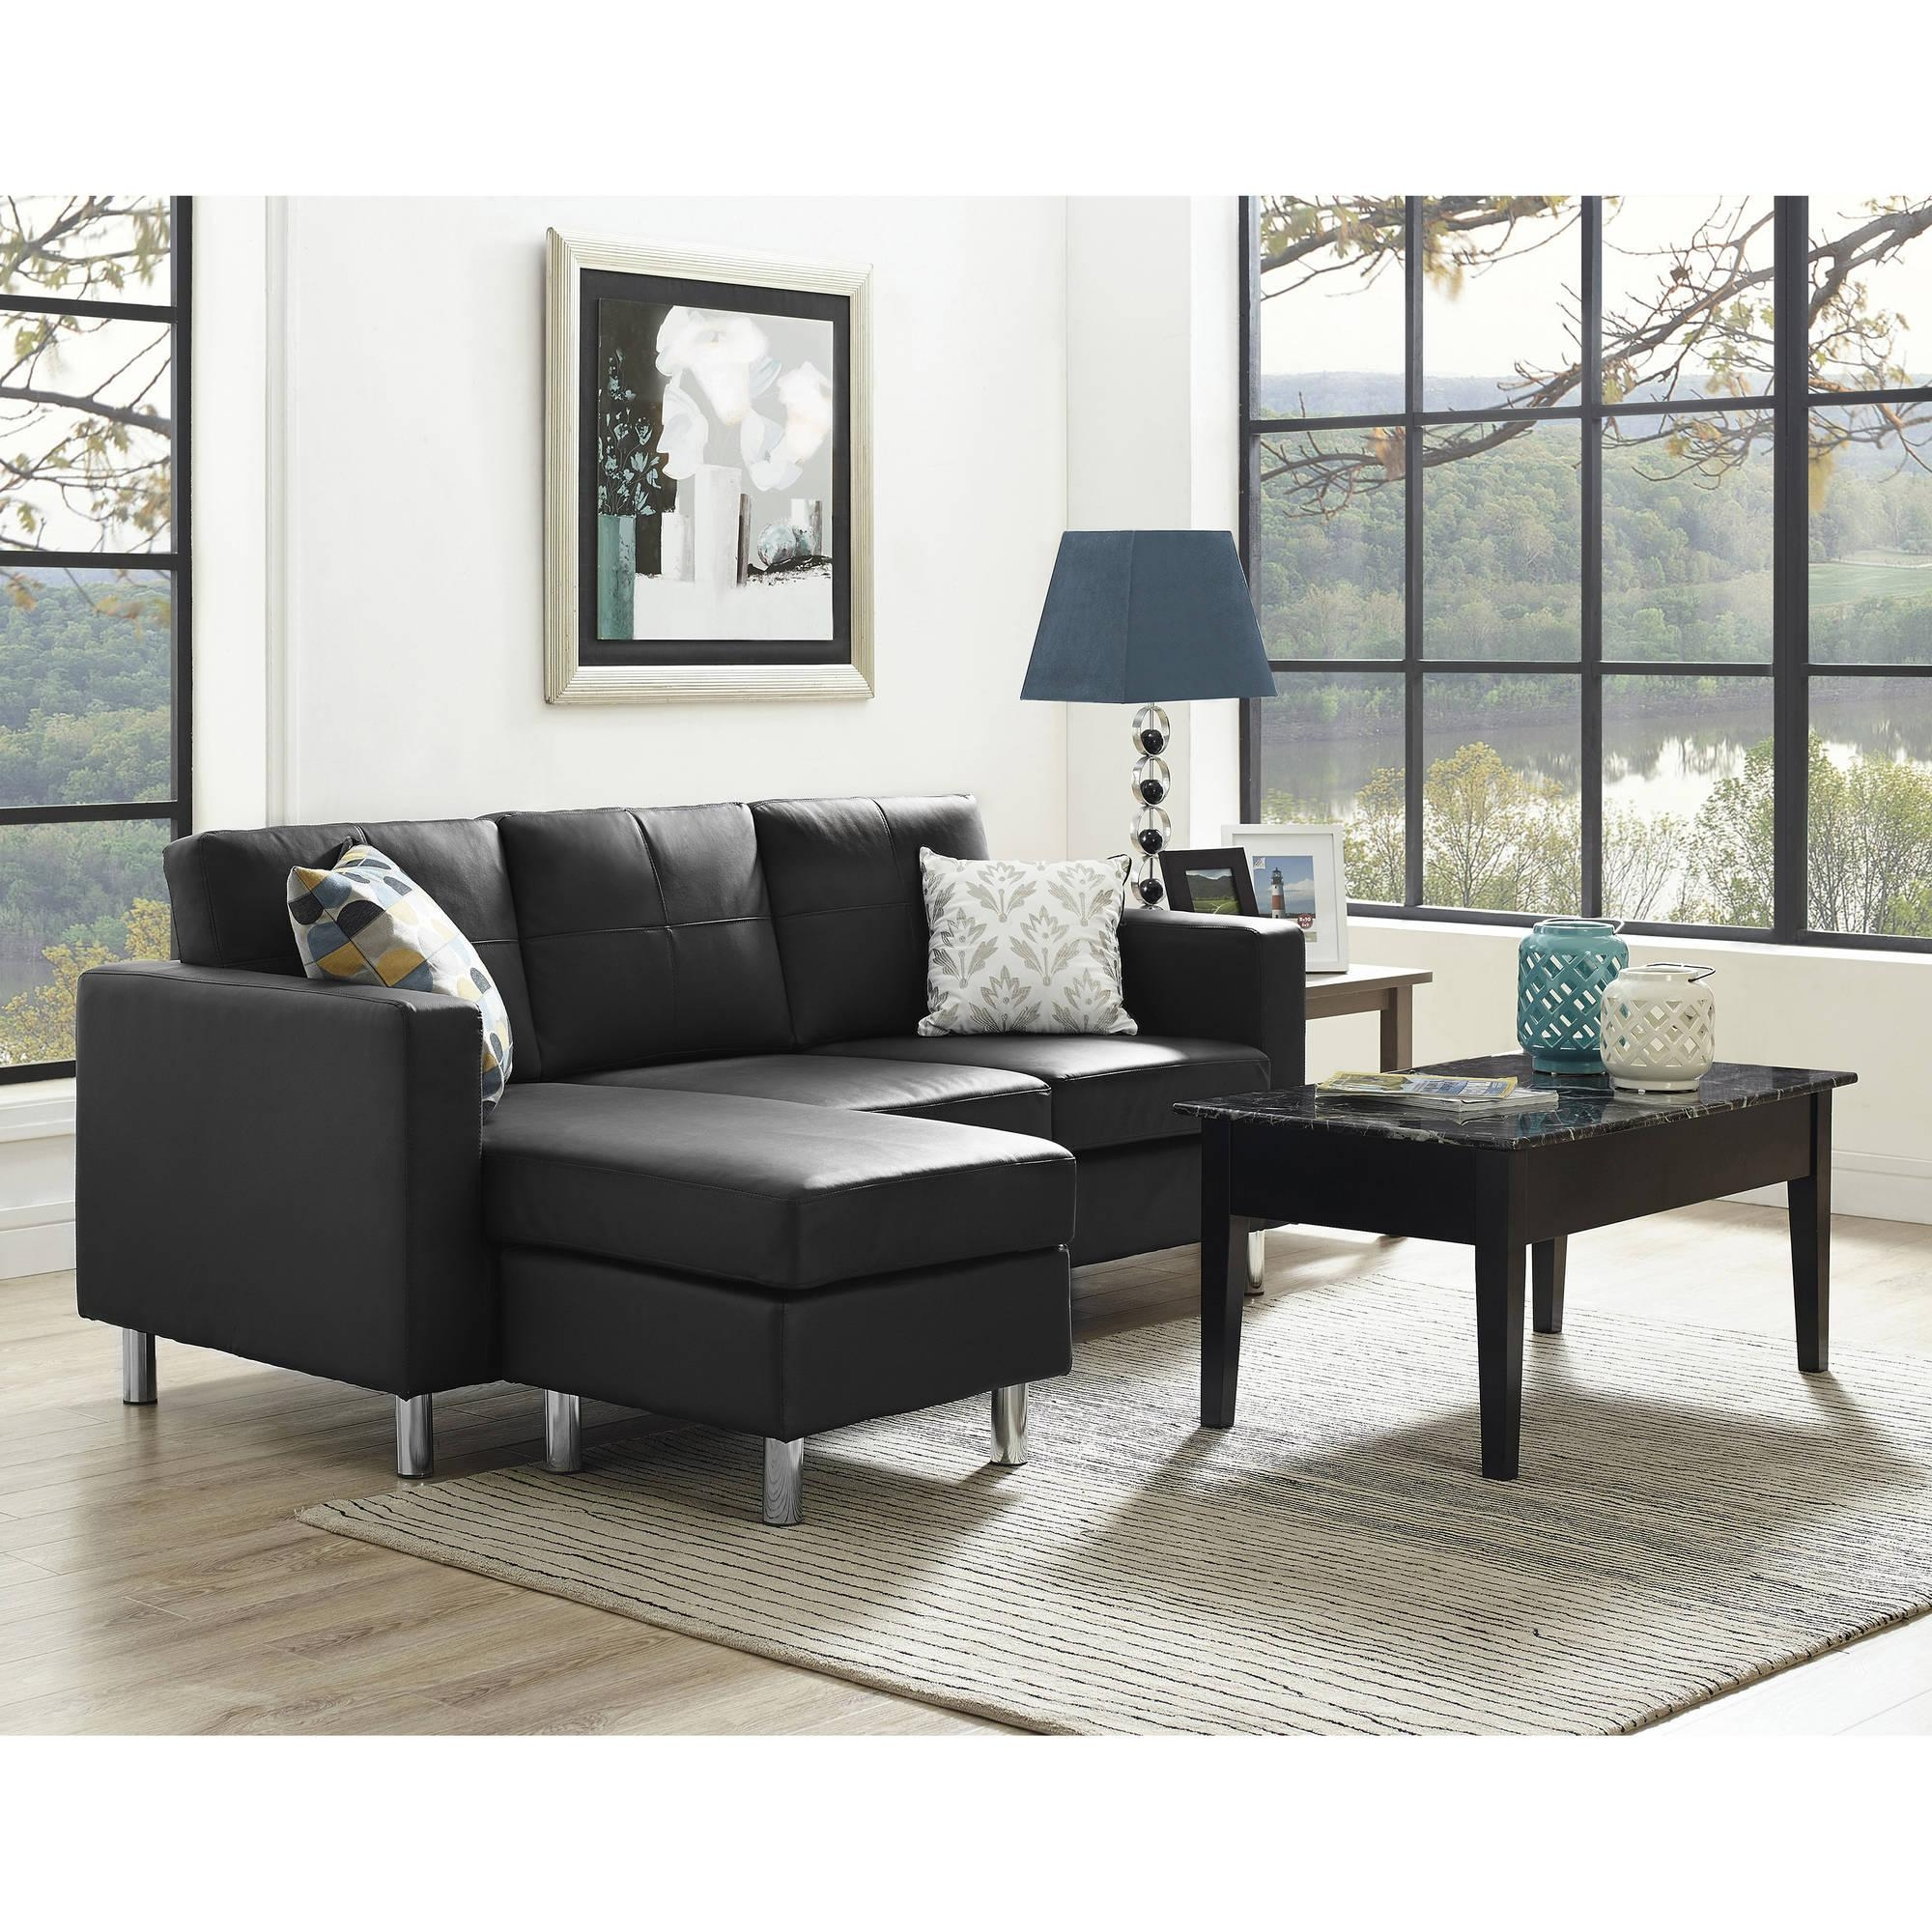 Apartment Sectional 2019 Latest Apartment Sectional Sofa Ideas